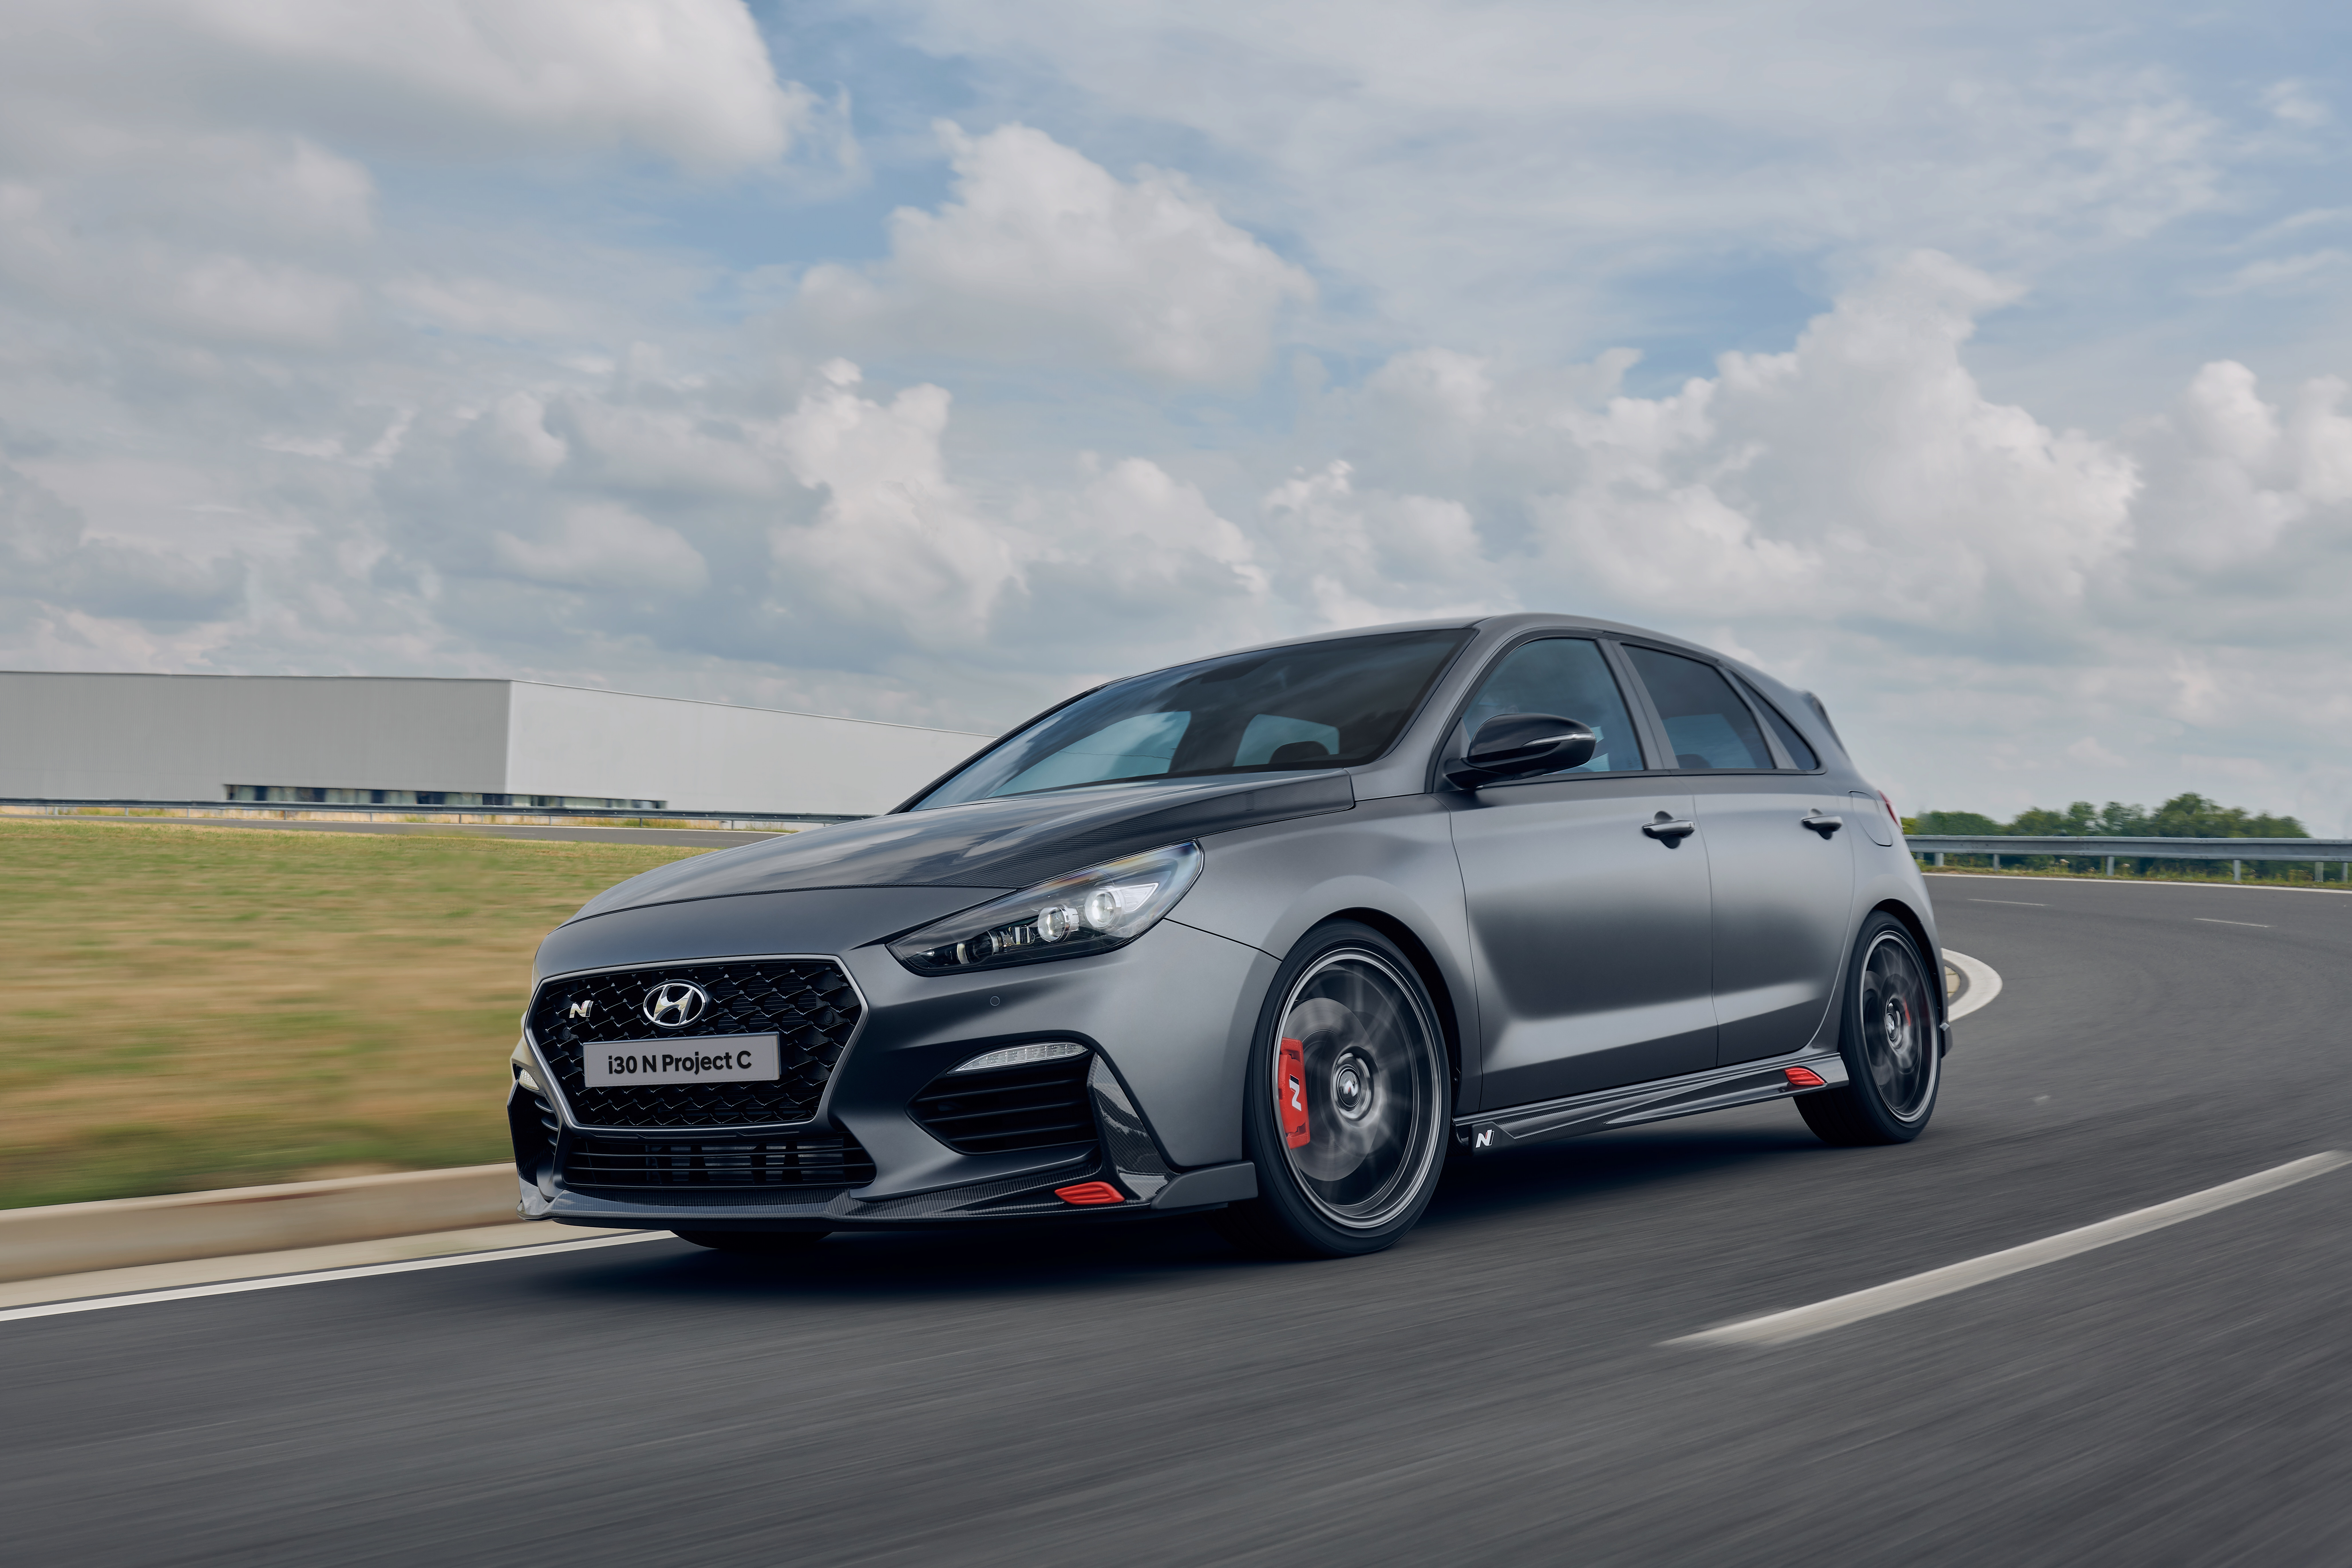 The 2020 Hyundai I30 N Project C Is The Hot Hatch We Deserved From The Beginning Top Speed